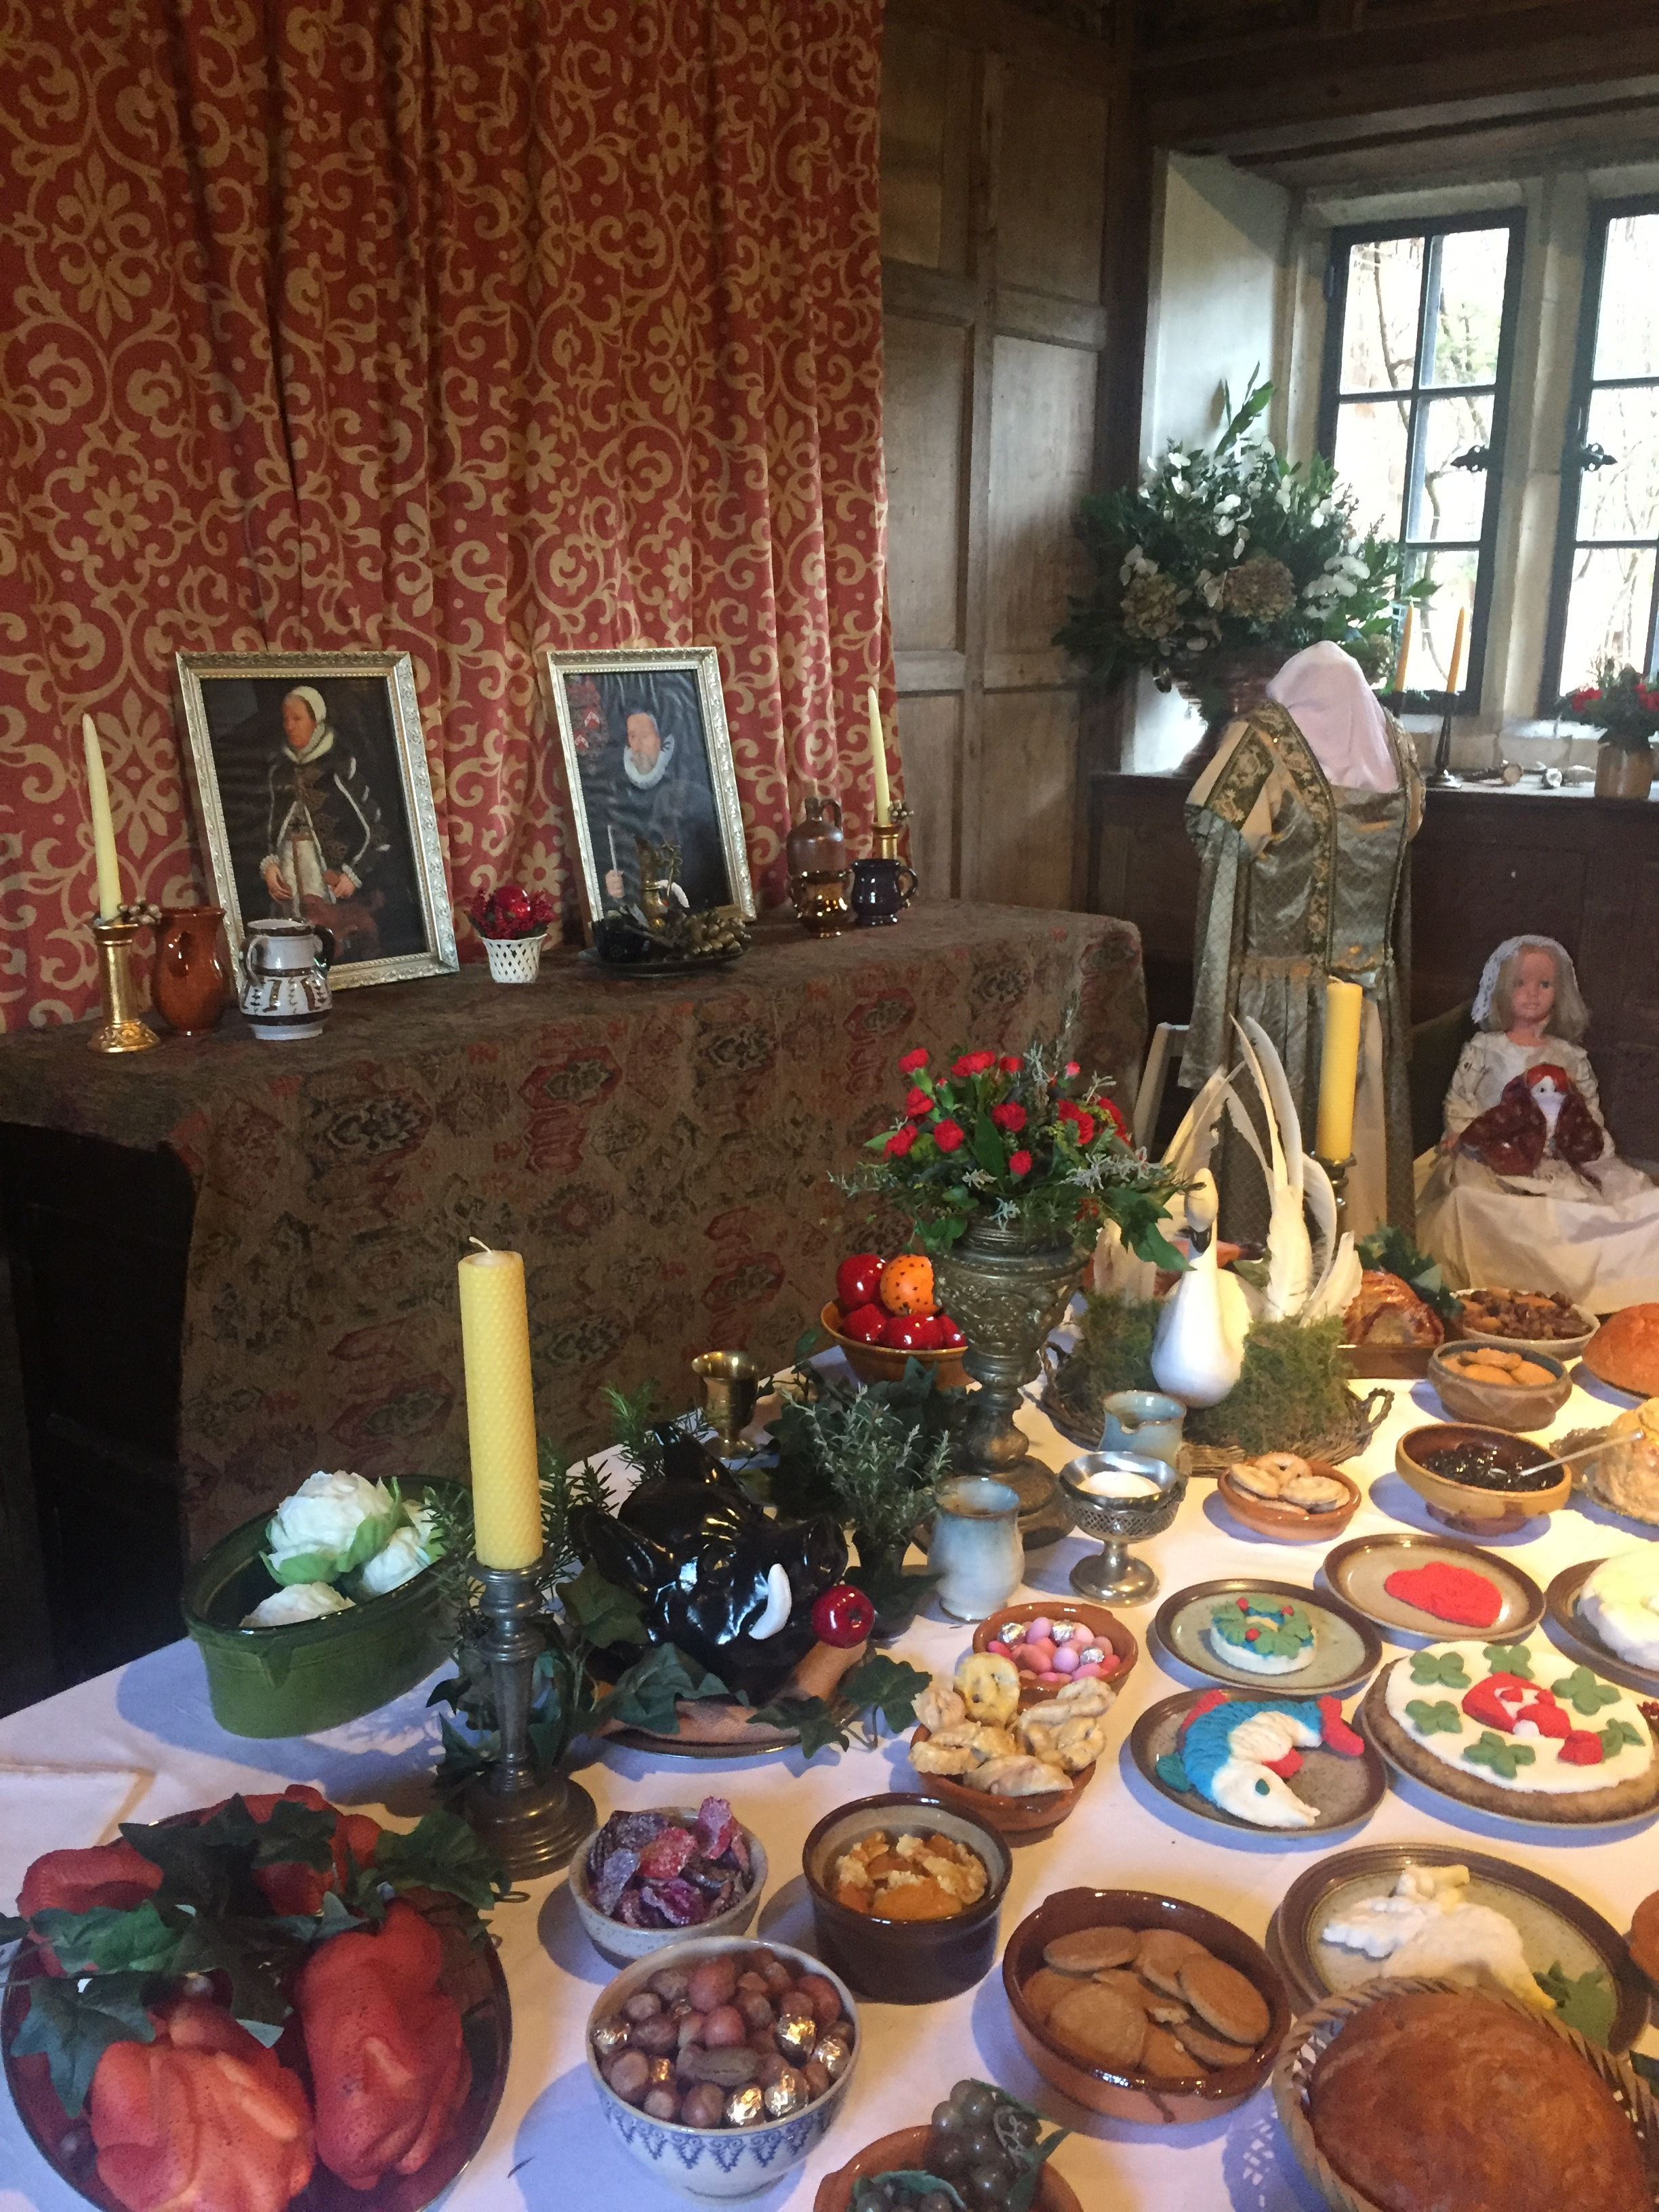 A Christmas display at Greys Court. Portraits of Katherine and Francis in the background. A sample of festive Tudor treats laid out on the table. And in back on the right, two dolls recreated by the volunteers to represent presents from Lettice to her younger sisters.